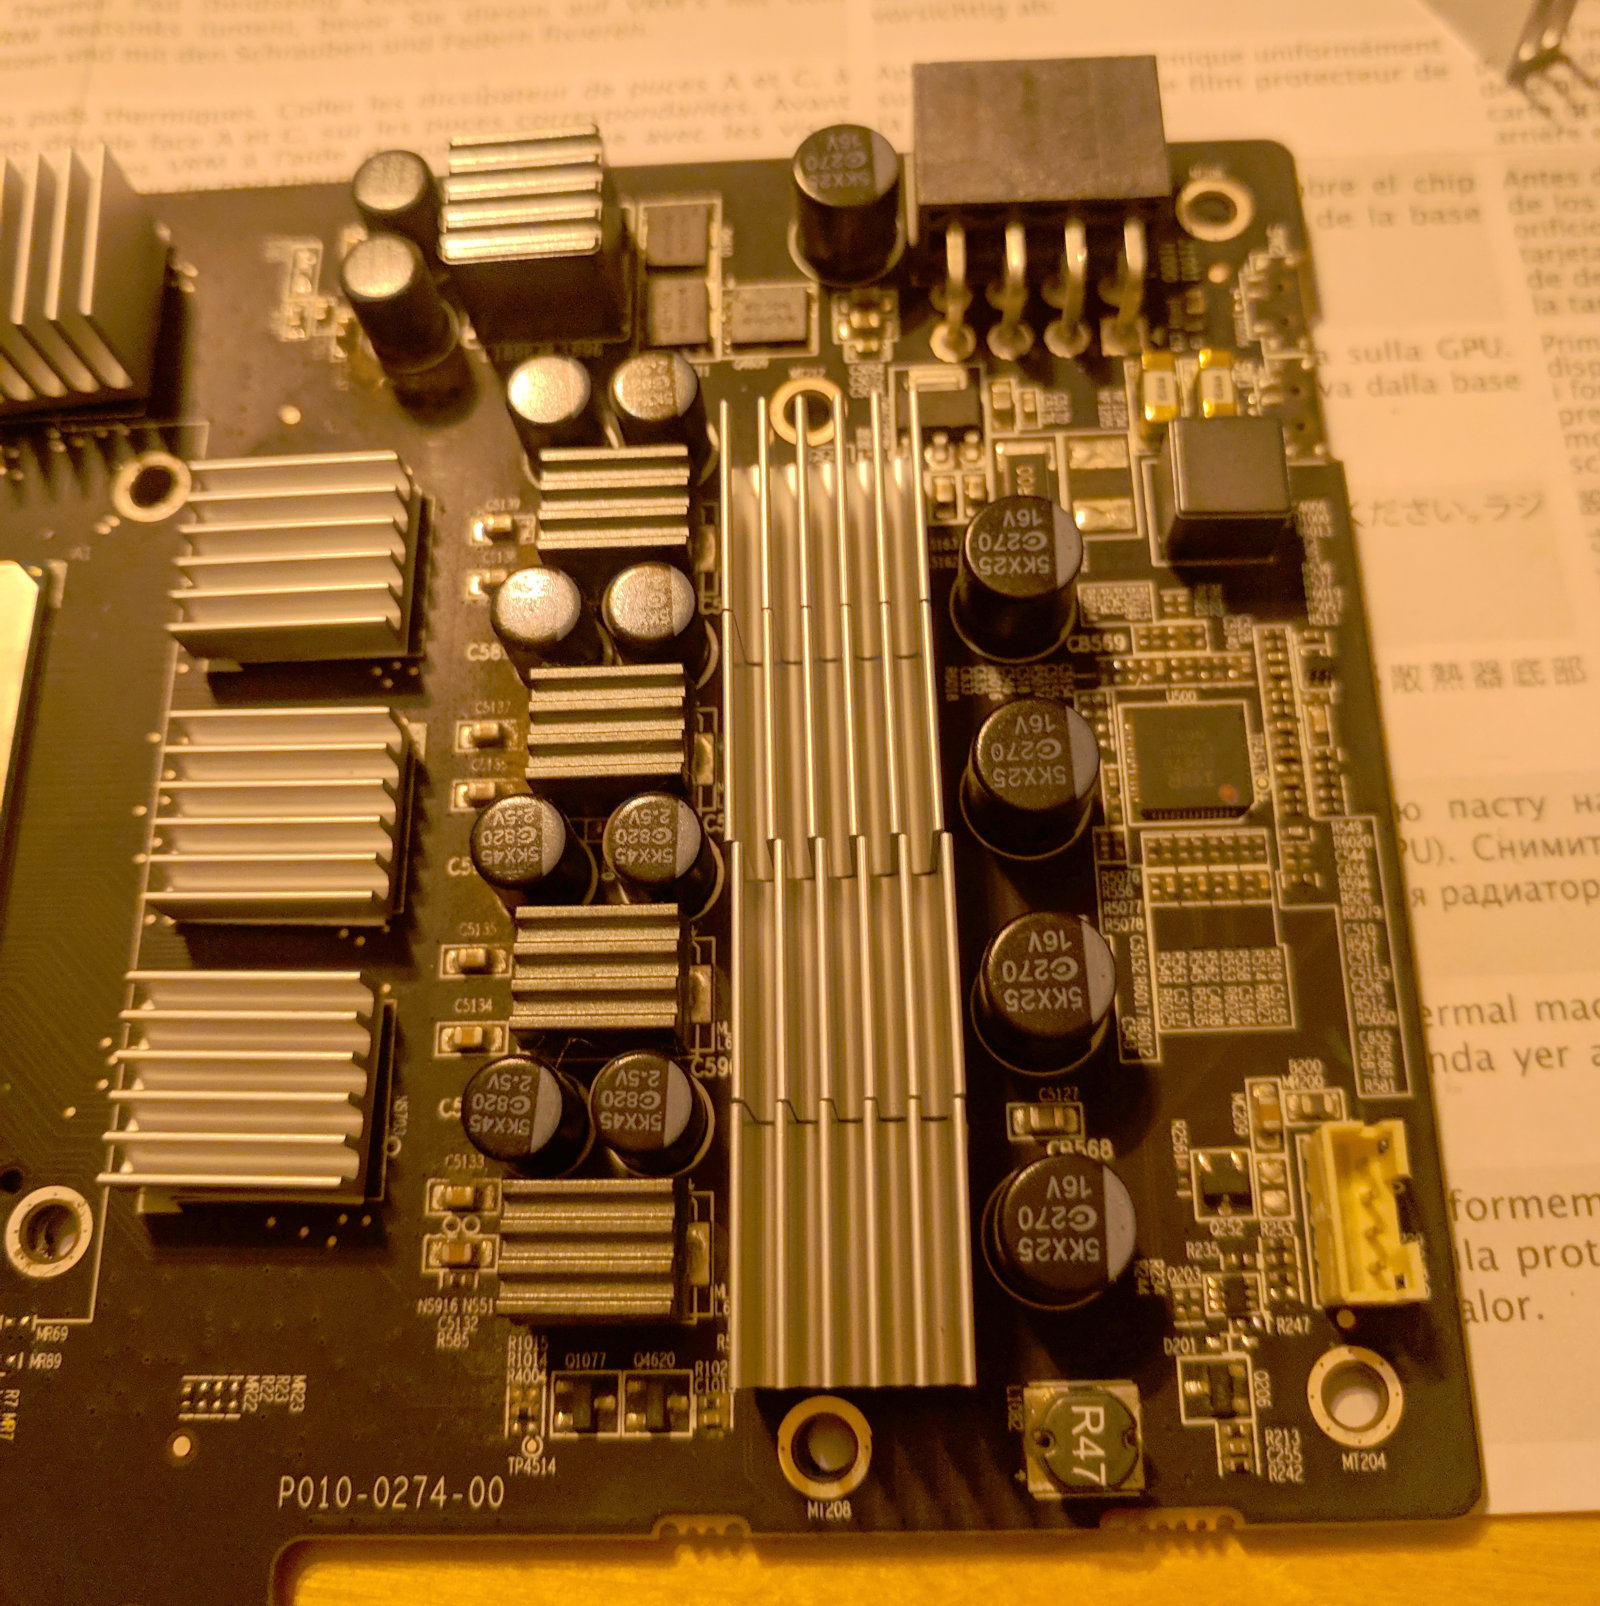 /blog/upload/10_improvised_vrm_heatsink.jpg